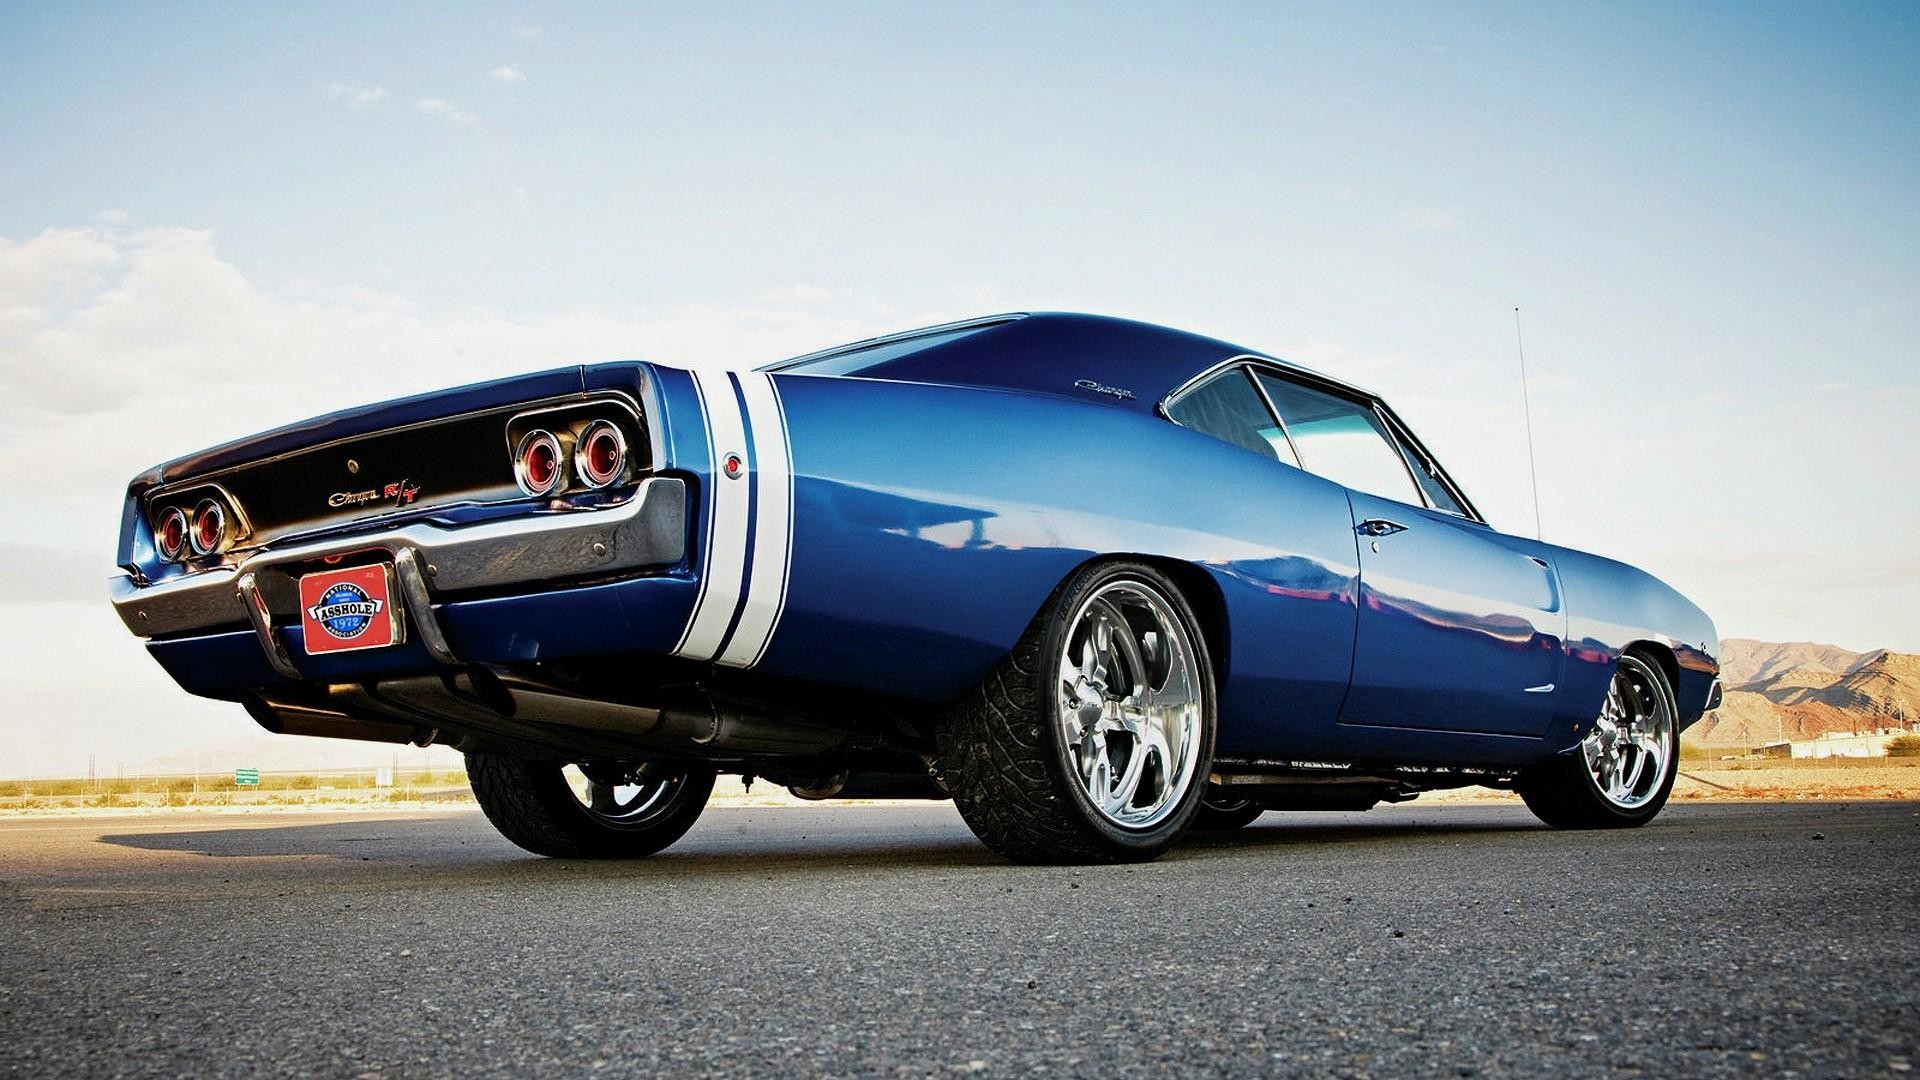 74 1970 Dodge Charger Wallpaper Hd